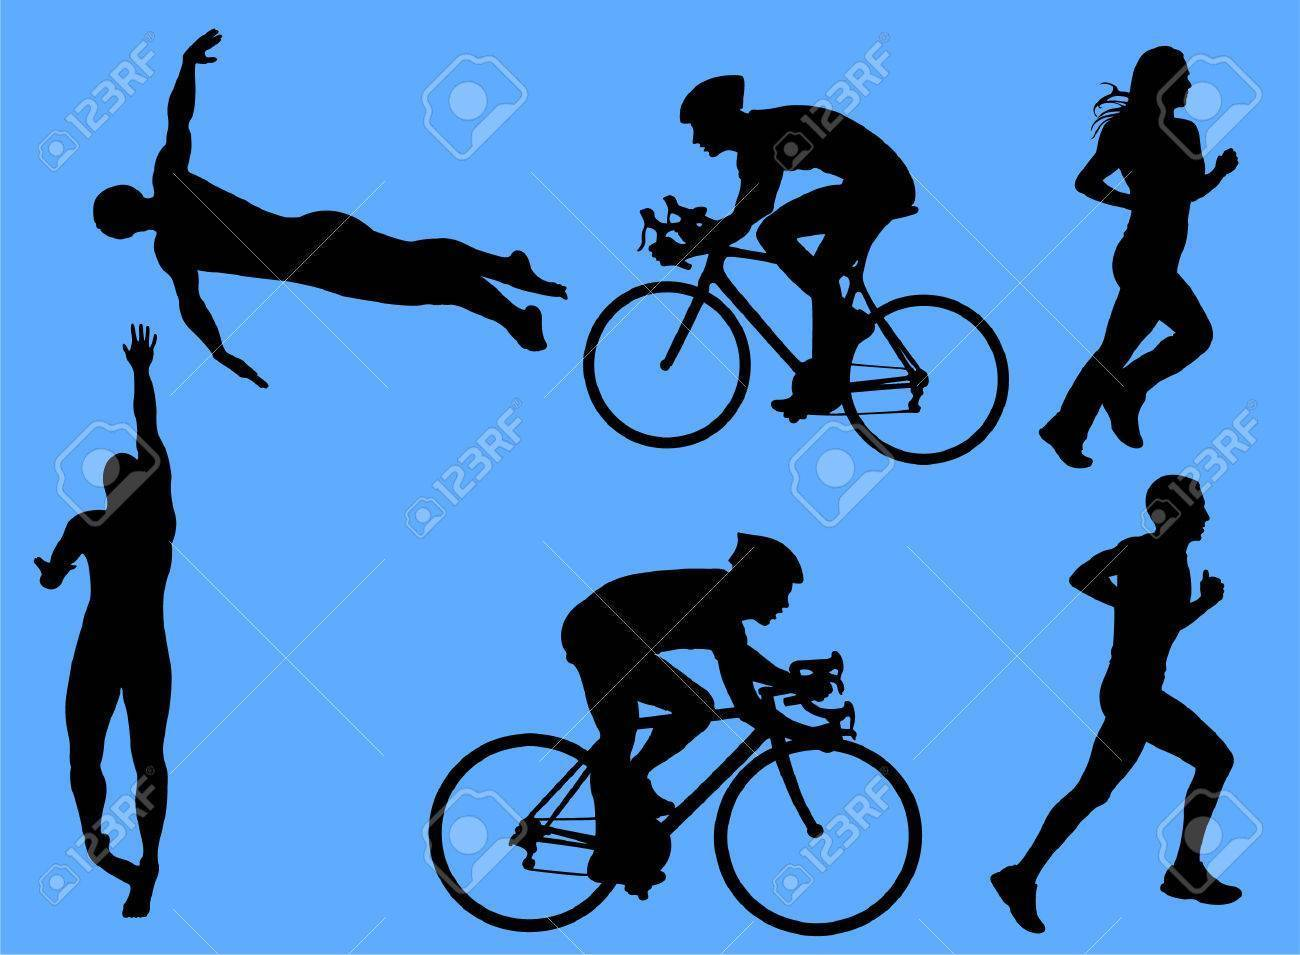 5954874-triathlon-vector-silhouettes-Stock-Photo.jpg